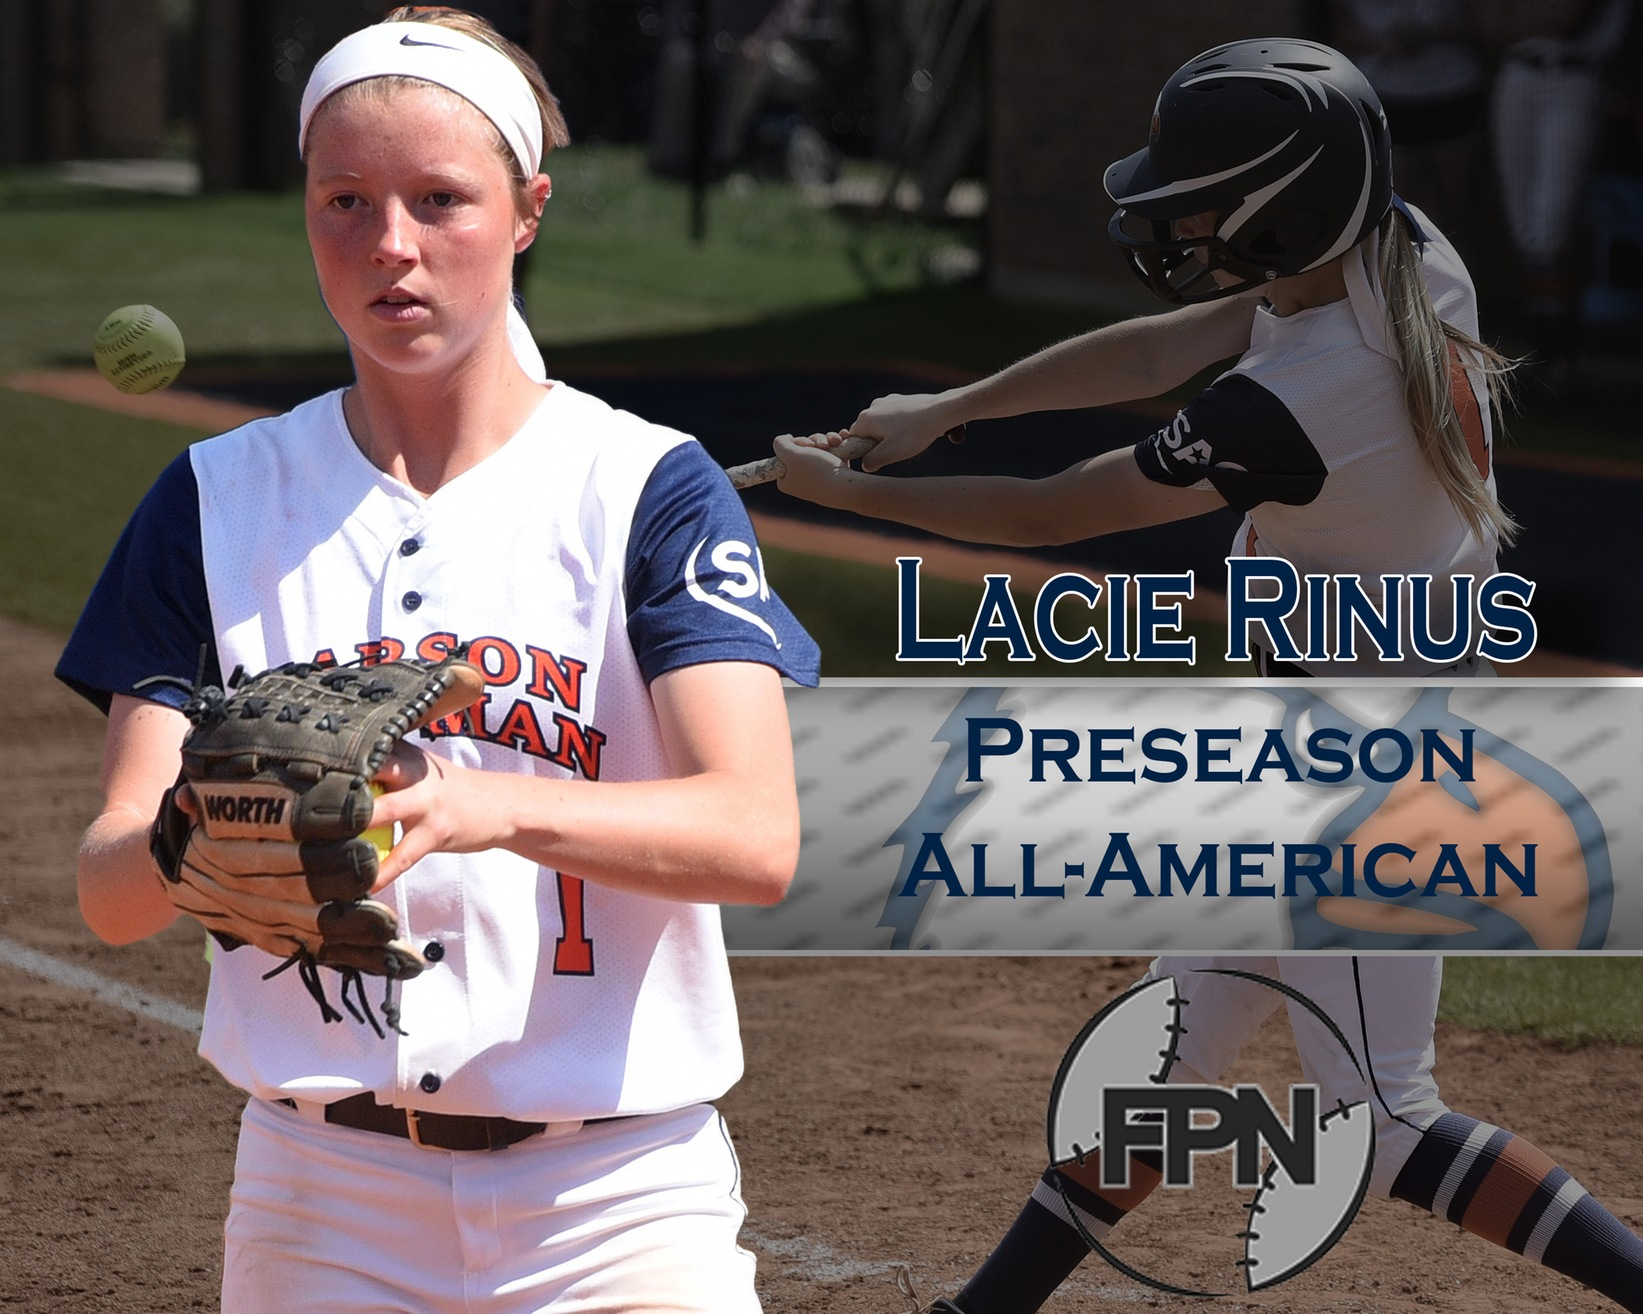 Fast Pitch News names Rinus to preseason All-America first team